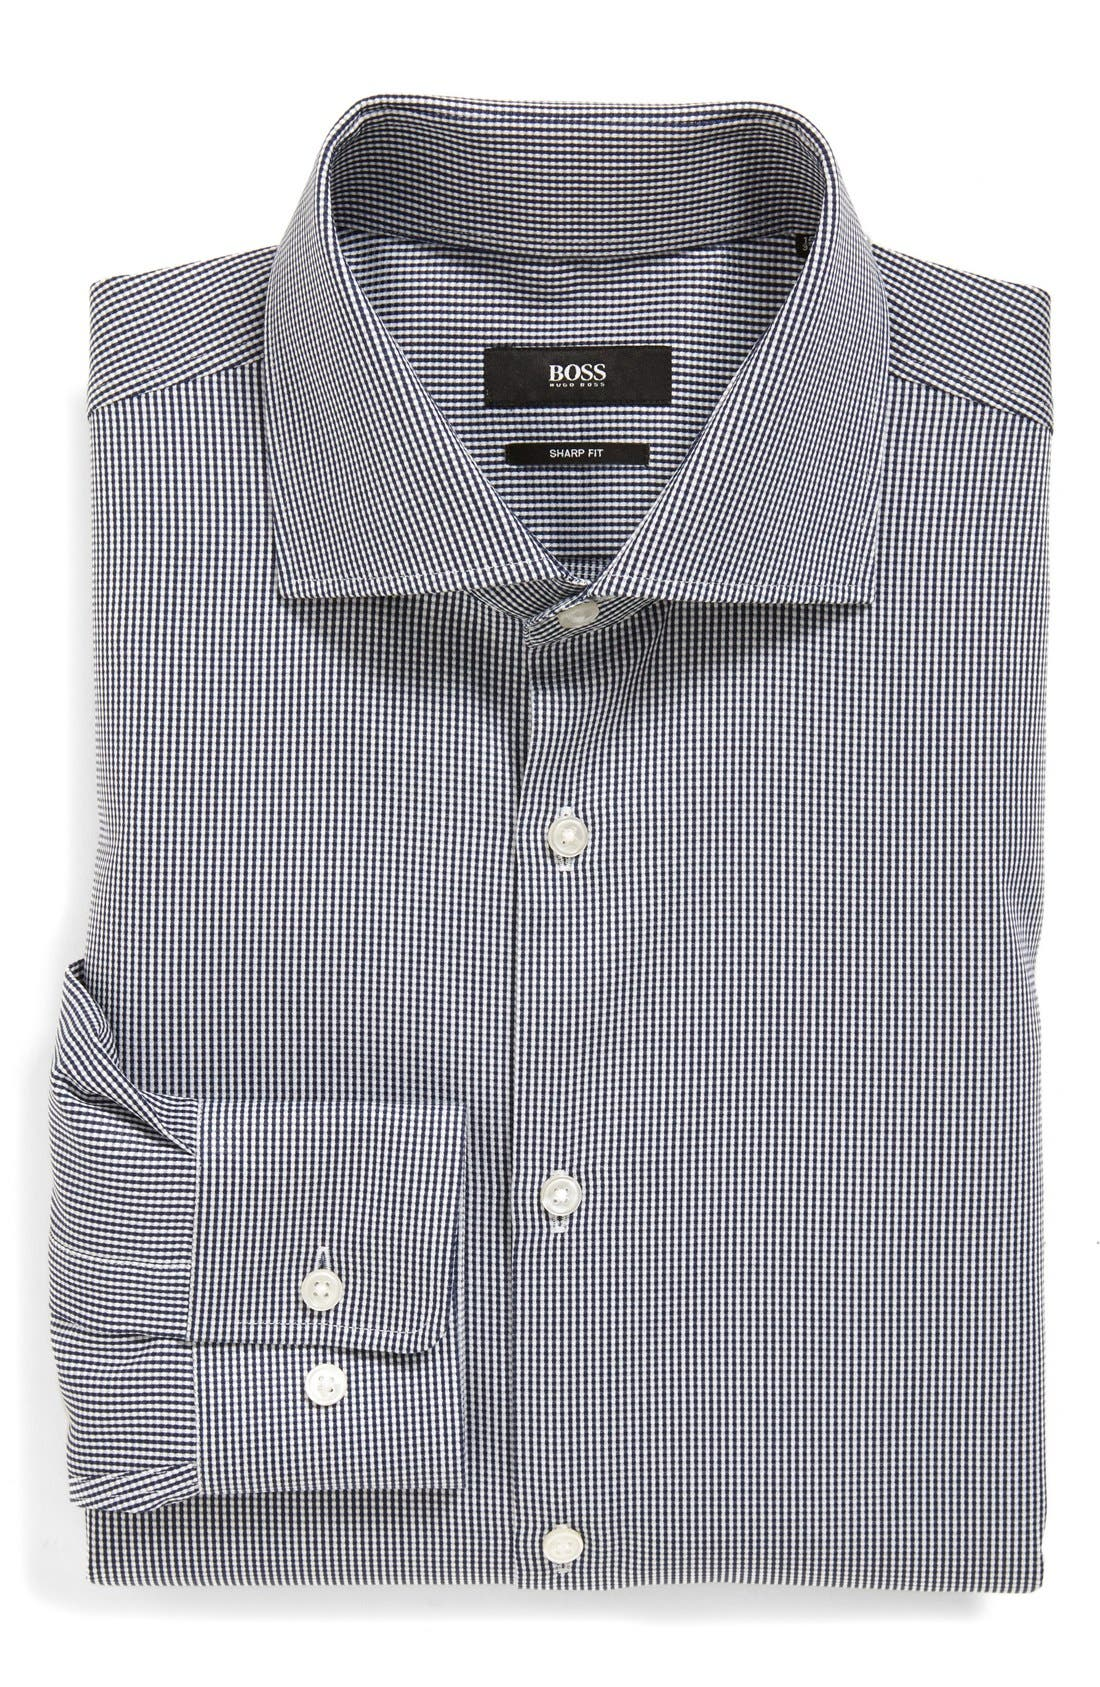 Alternate Image 1 Selected - BOSS 'Miles' Sharp Fit Check Dress Shirt